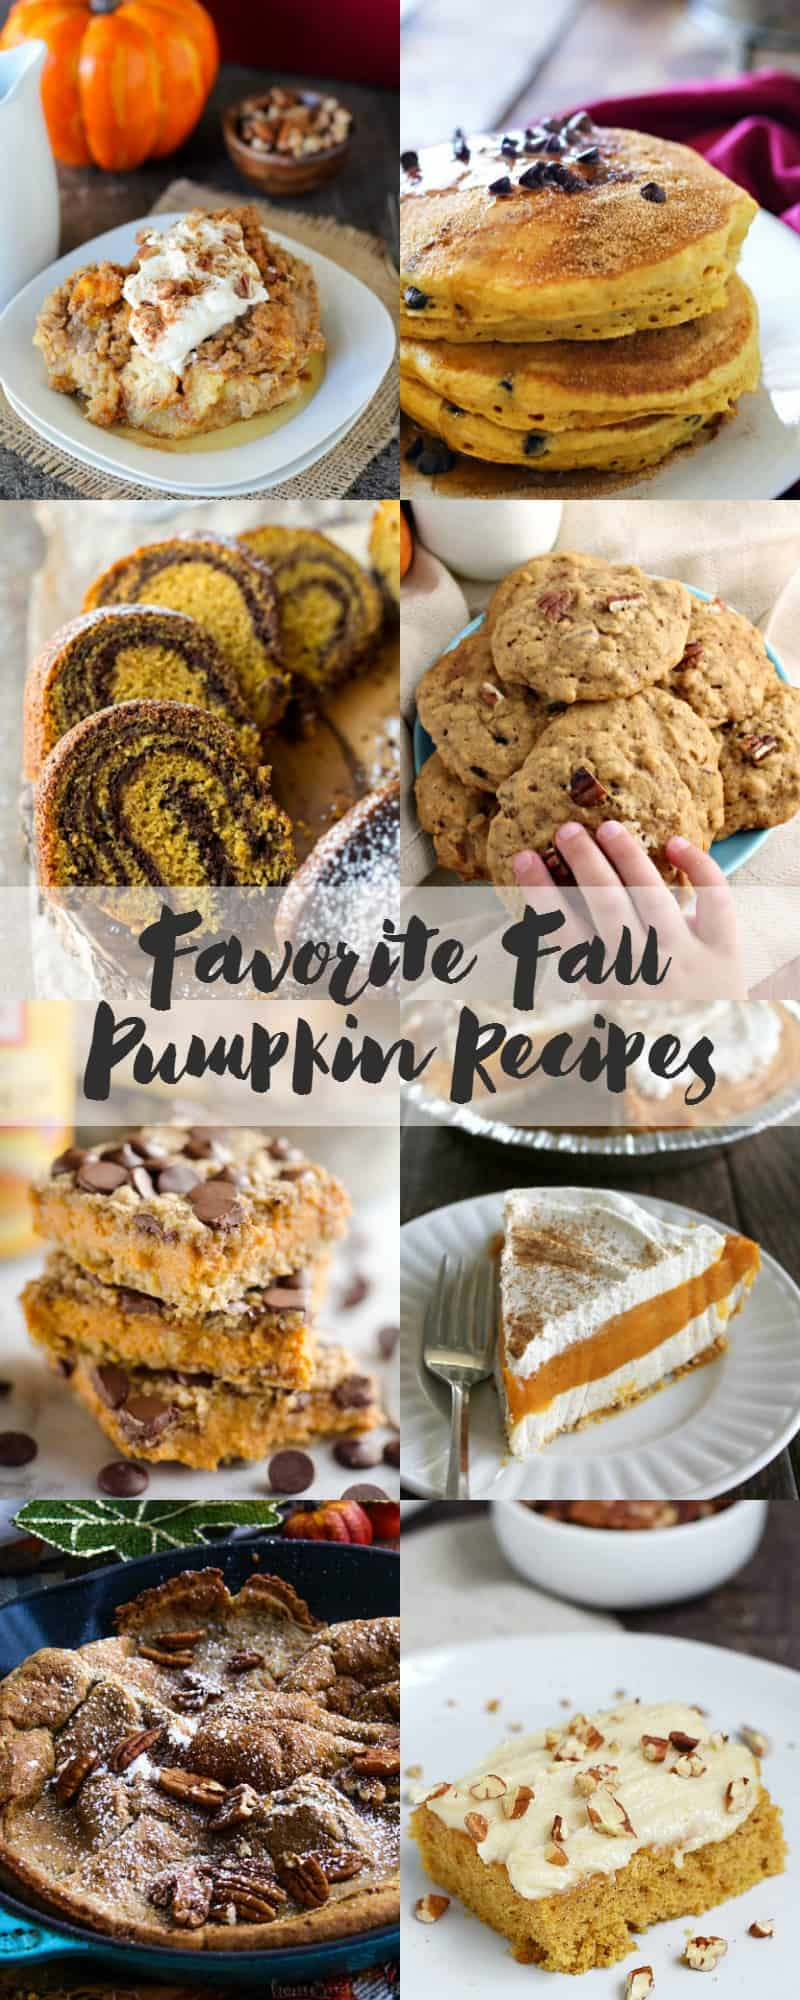 Favorite Fall Pumpkin Recipes from your favorite bloggers | cookingwithcurls.com #feastndevour